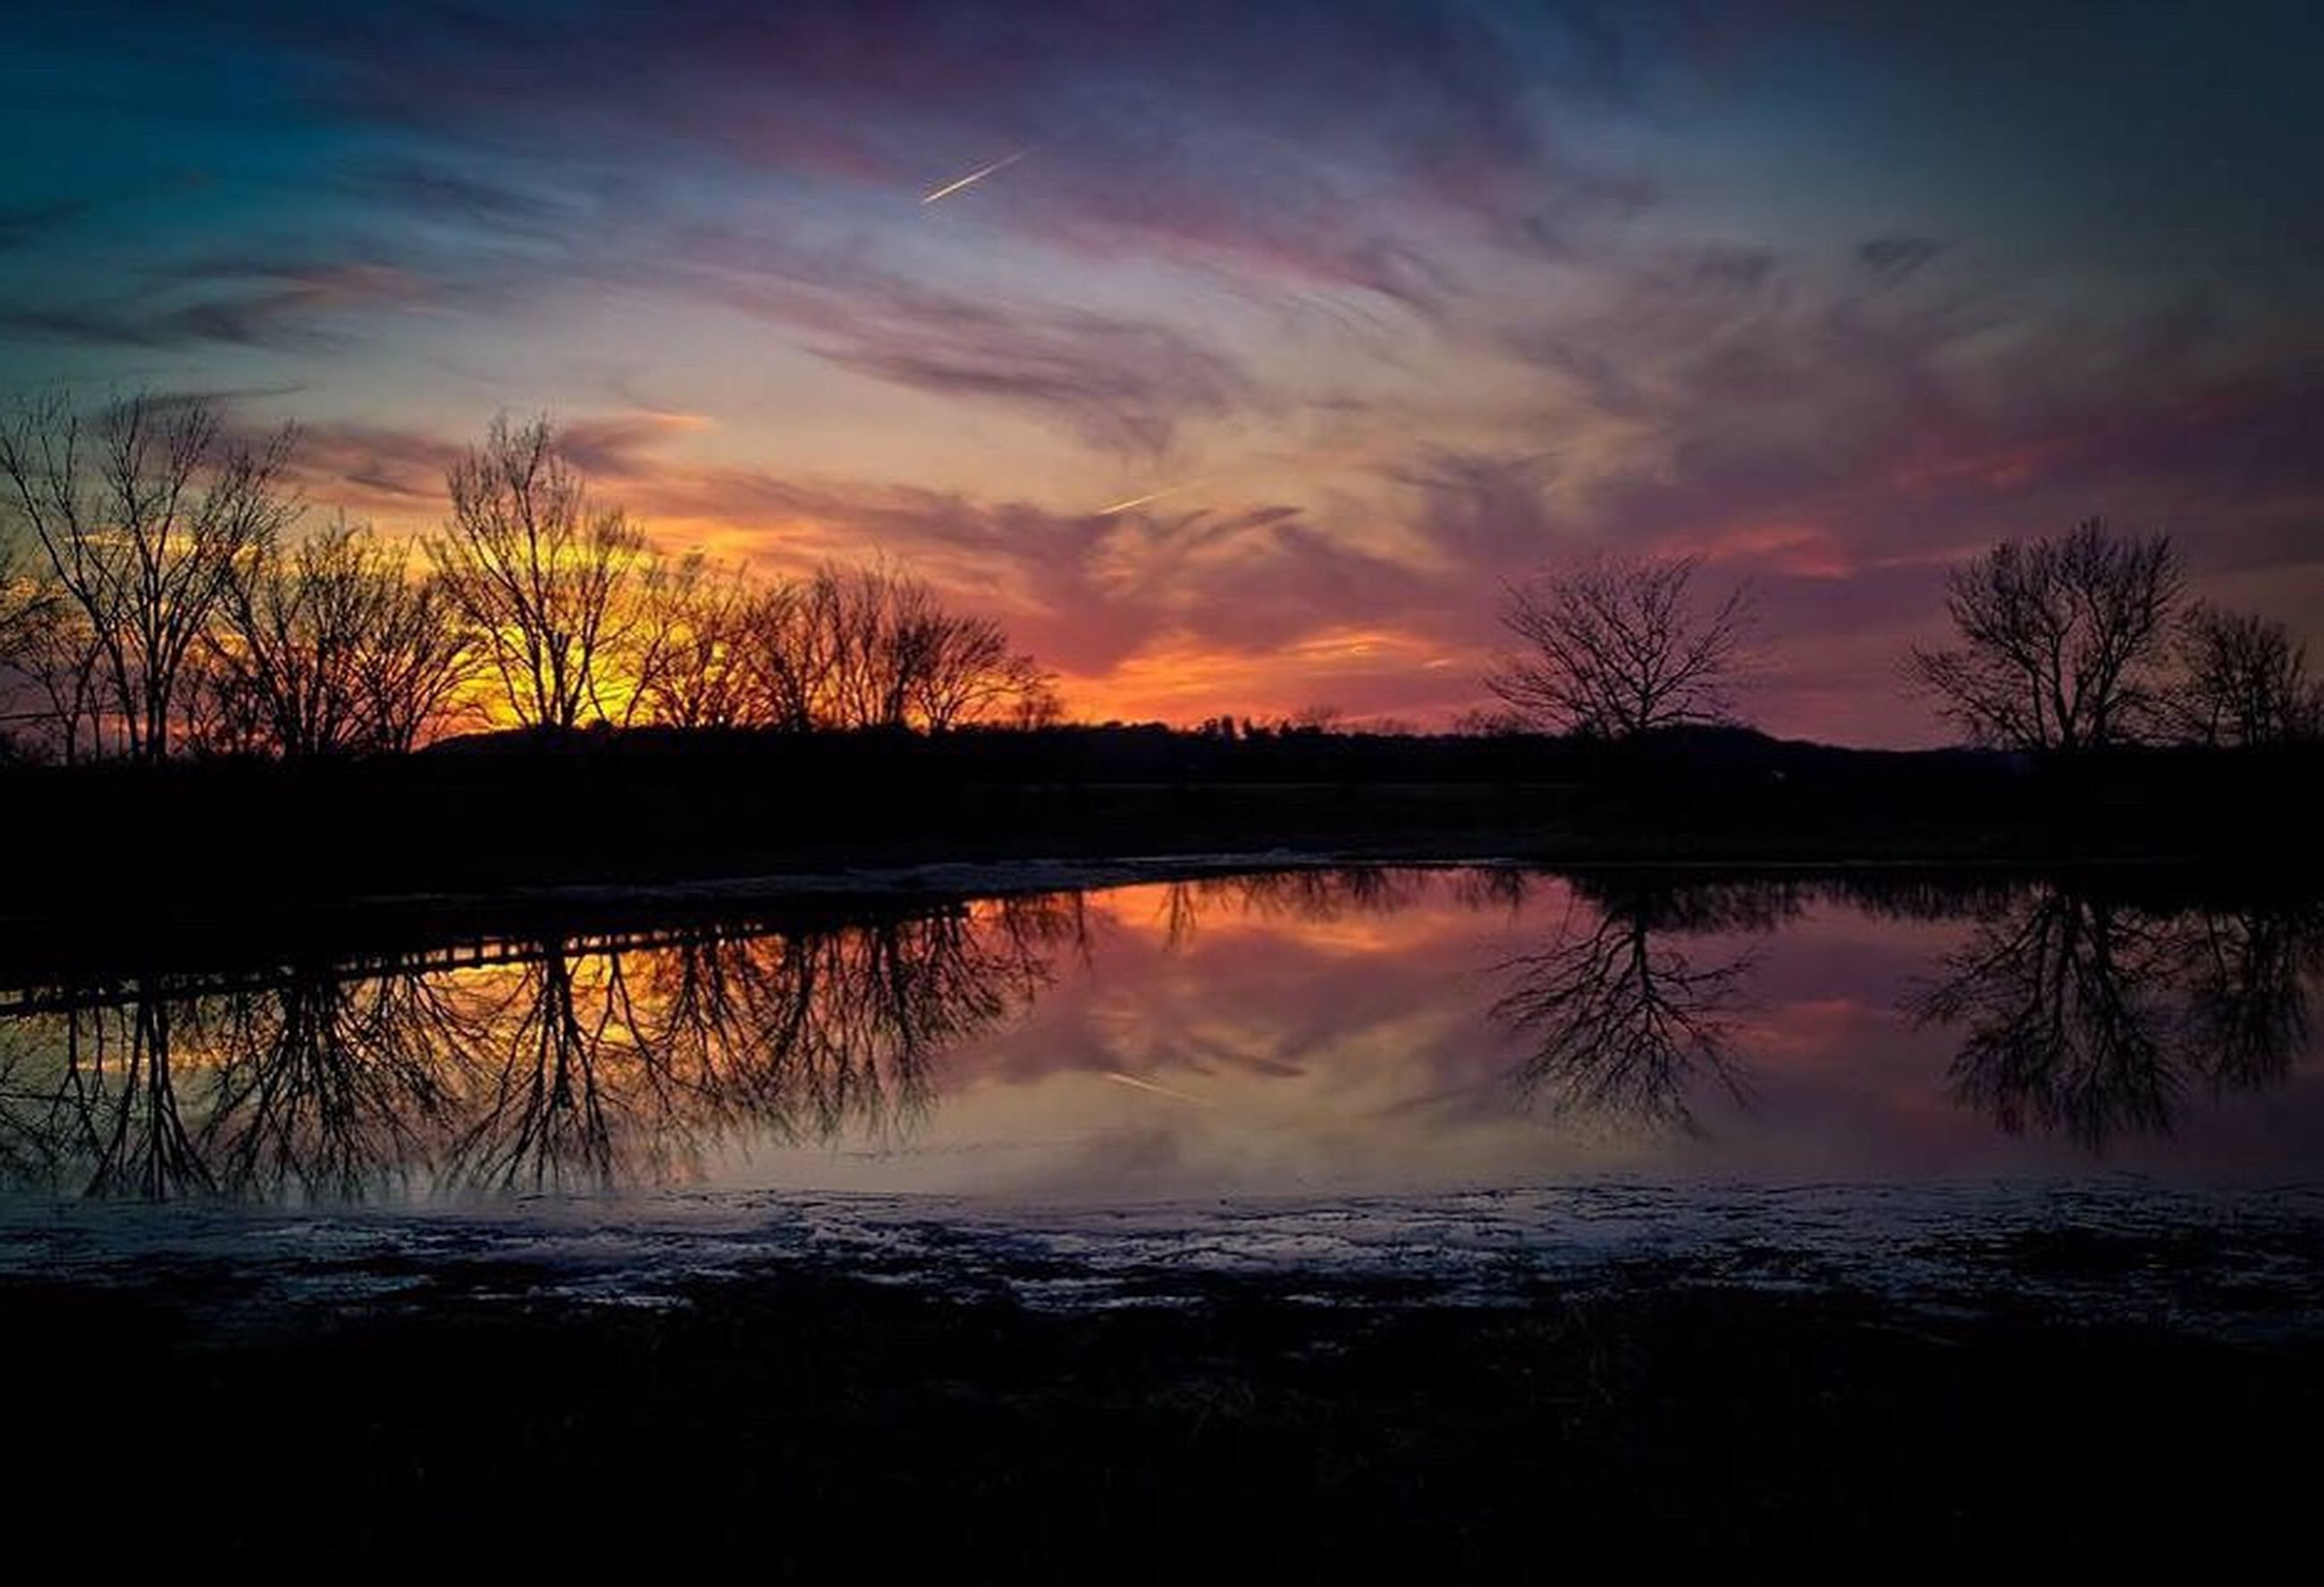 sunset, reflection, water, scenics, silhouette, lake, tranquil scene, bare tree, tranquility, beauty in nature, orange color, nature, sky, majestic, branch, romantic sky, non-urban scene, outdoors, multi colored, dramatic sky, no people, remote, non urban scene, standing water